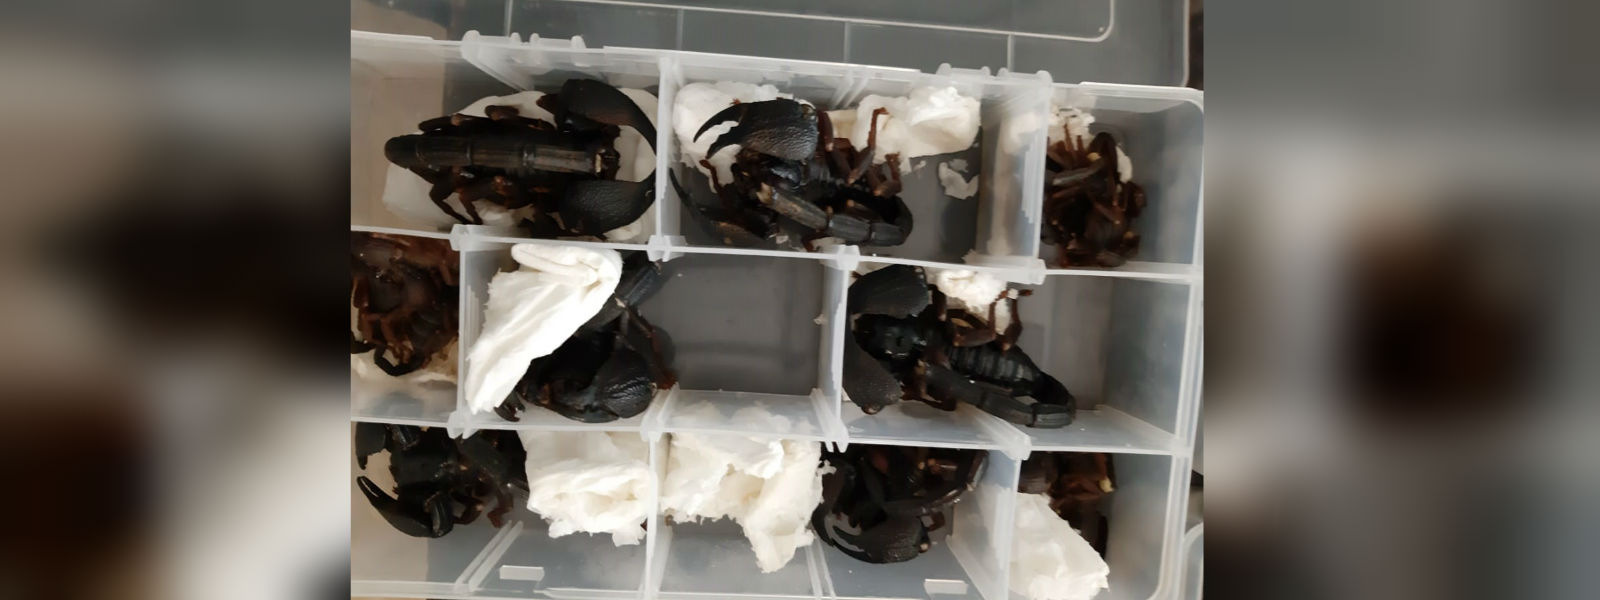 Chinese scorpion smuggler arrested at the BIA